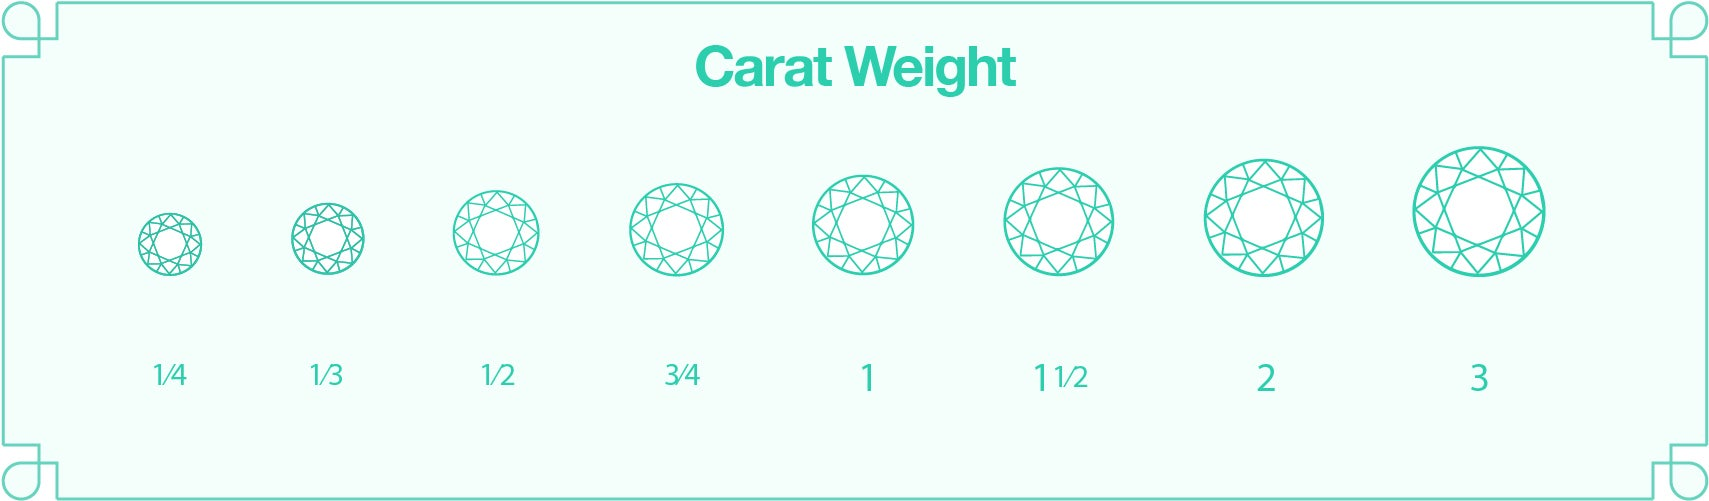 diamond weight youtube carat watch